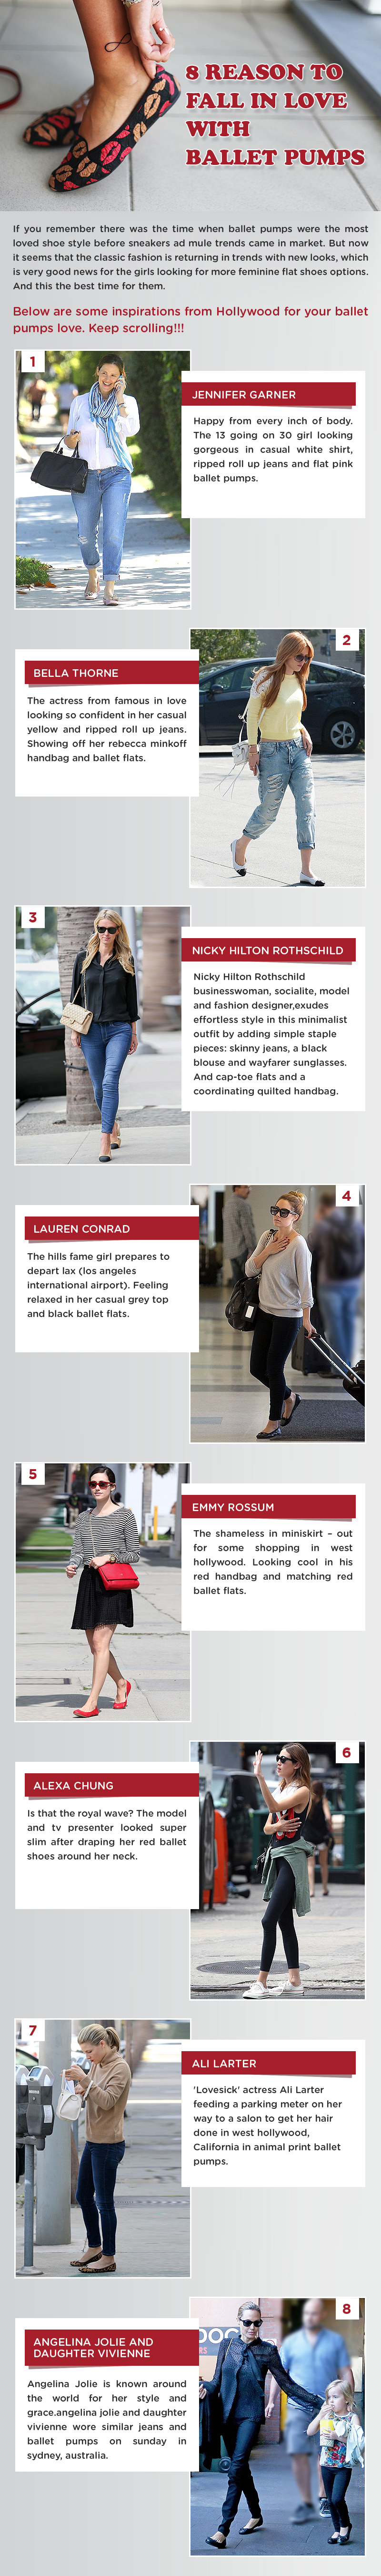 8 Reasons To Fall In Love With Ballet Pumps [Infographic]